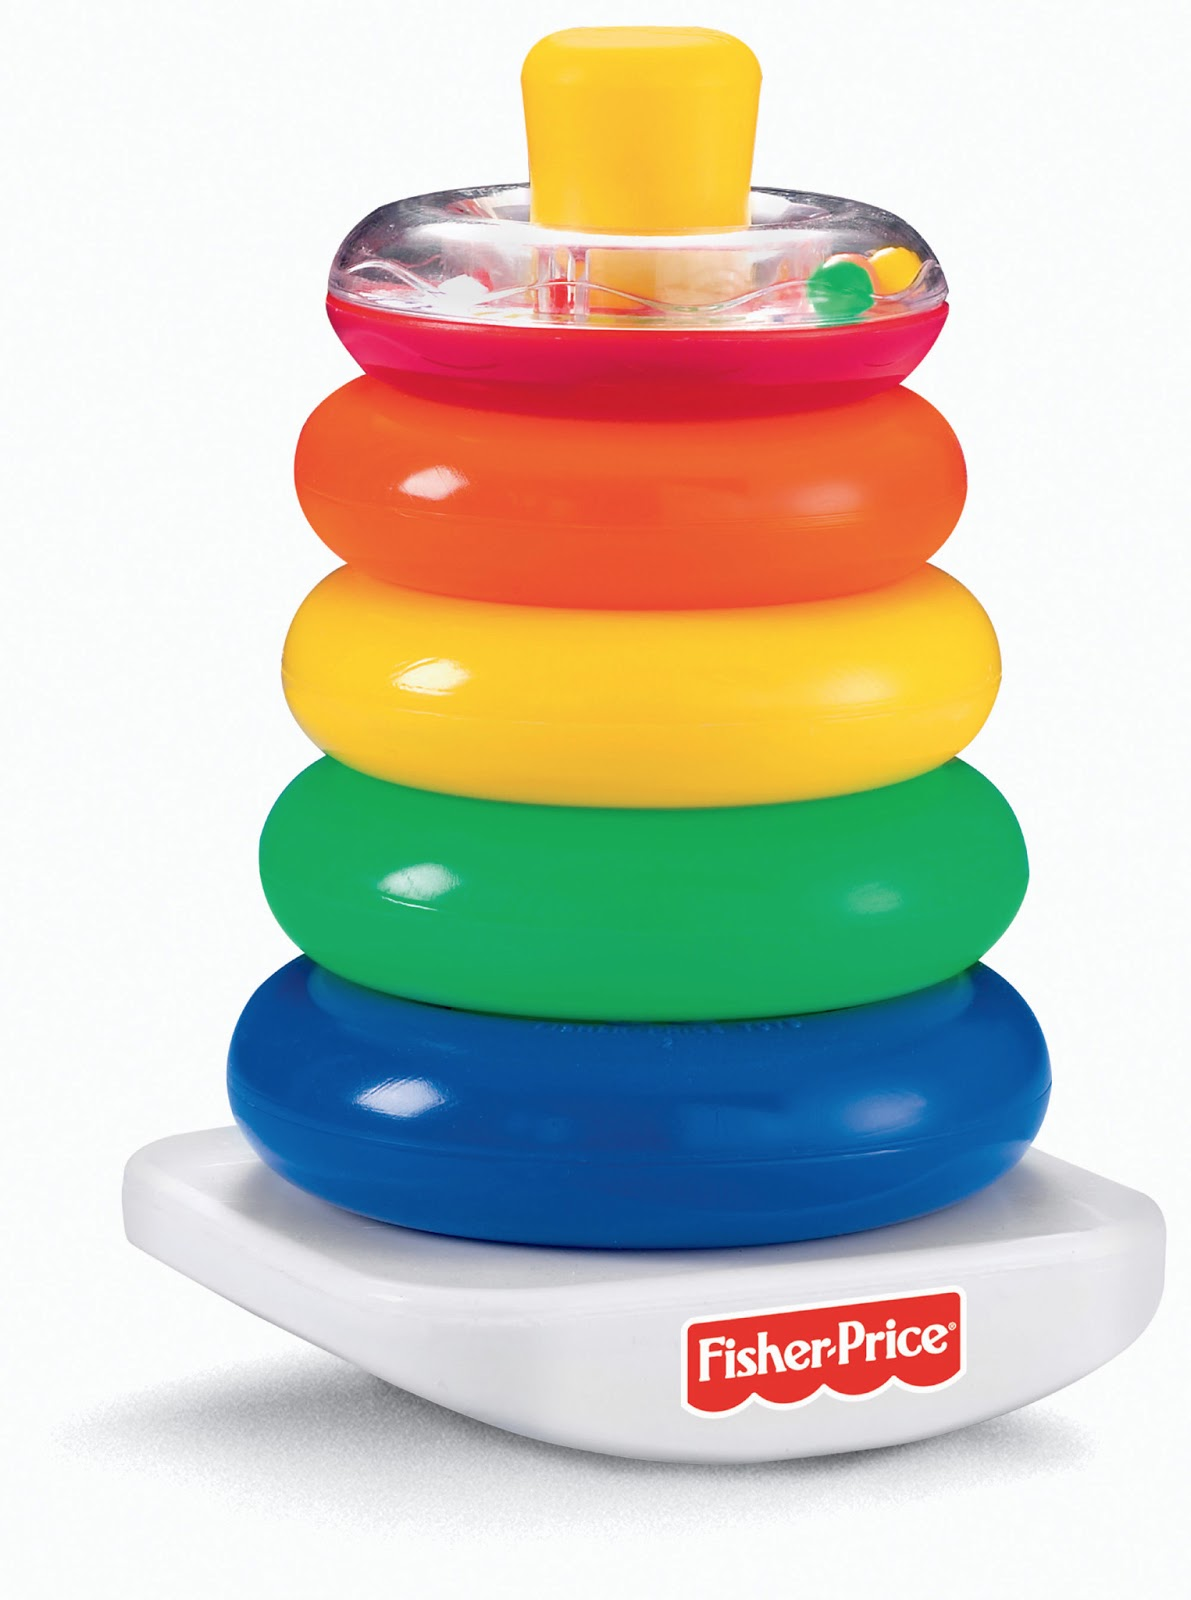 Fisher Price Toys : Fisher price favourites and exclusive savings toronto